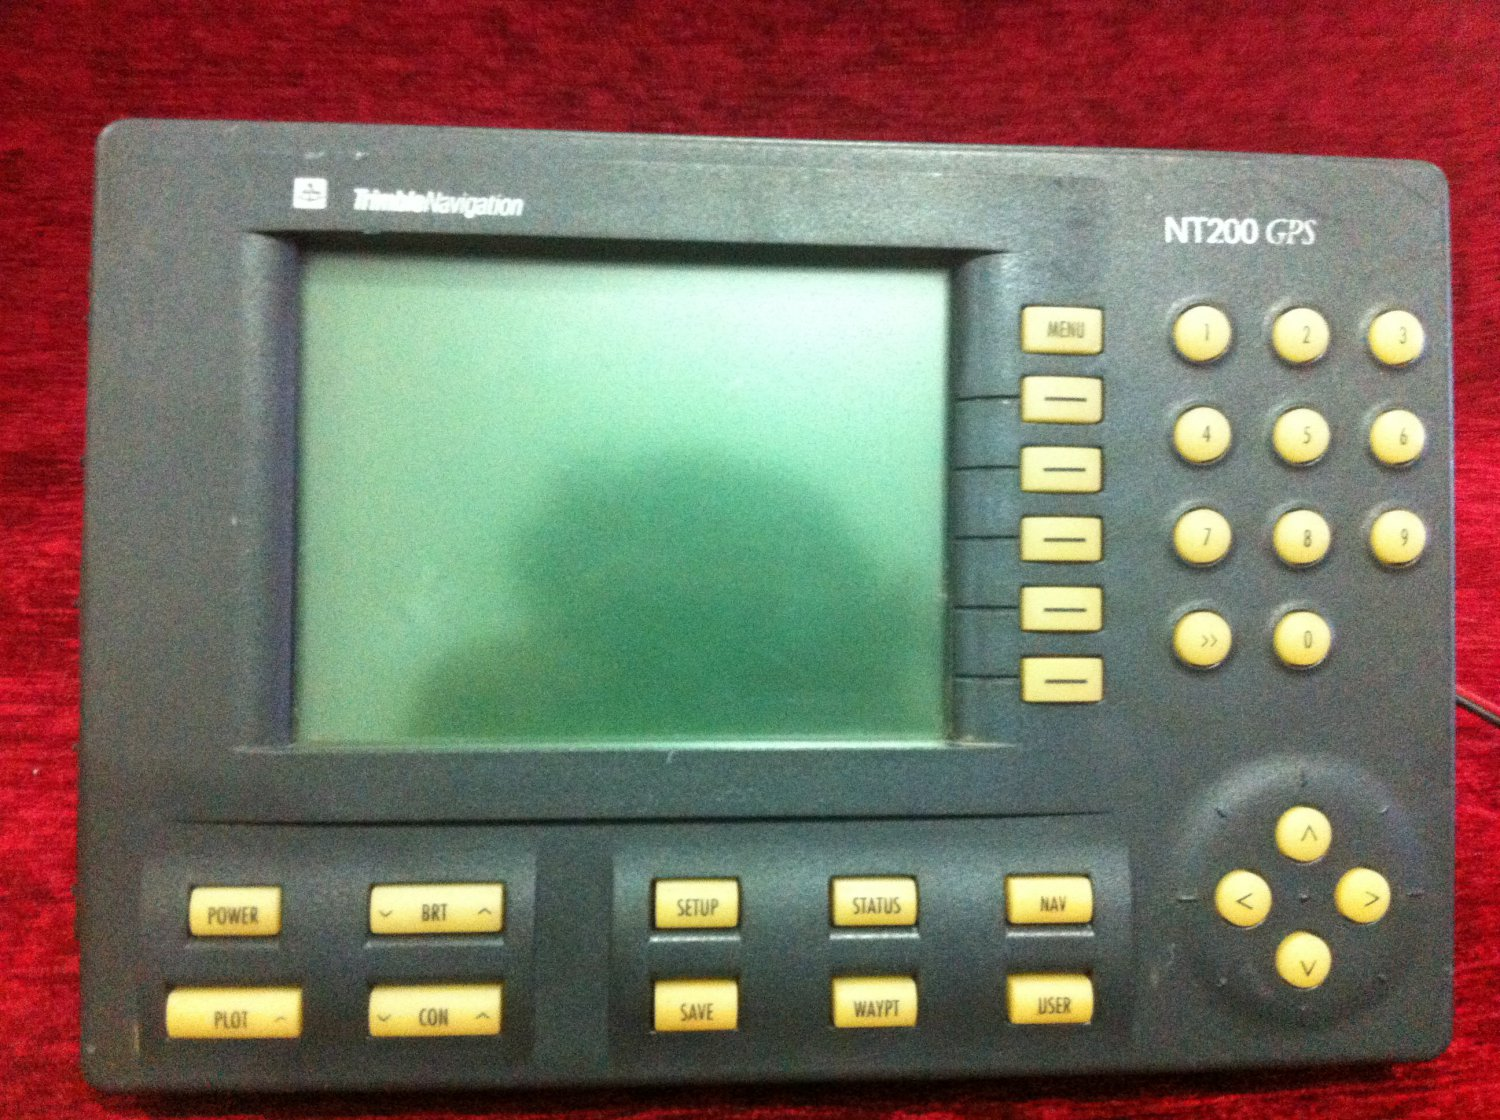 Trimble Navigation NT 200 GPS for Boats and Yachts